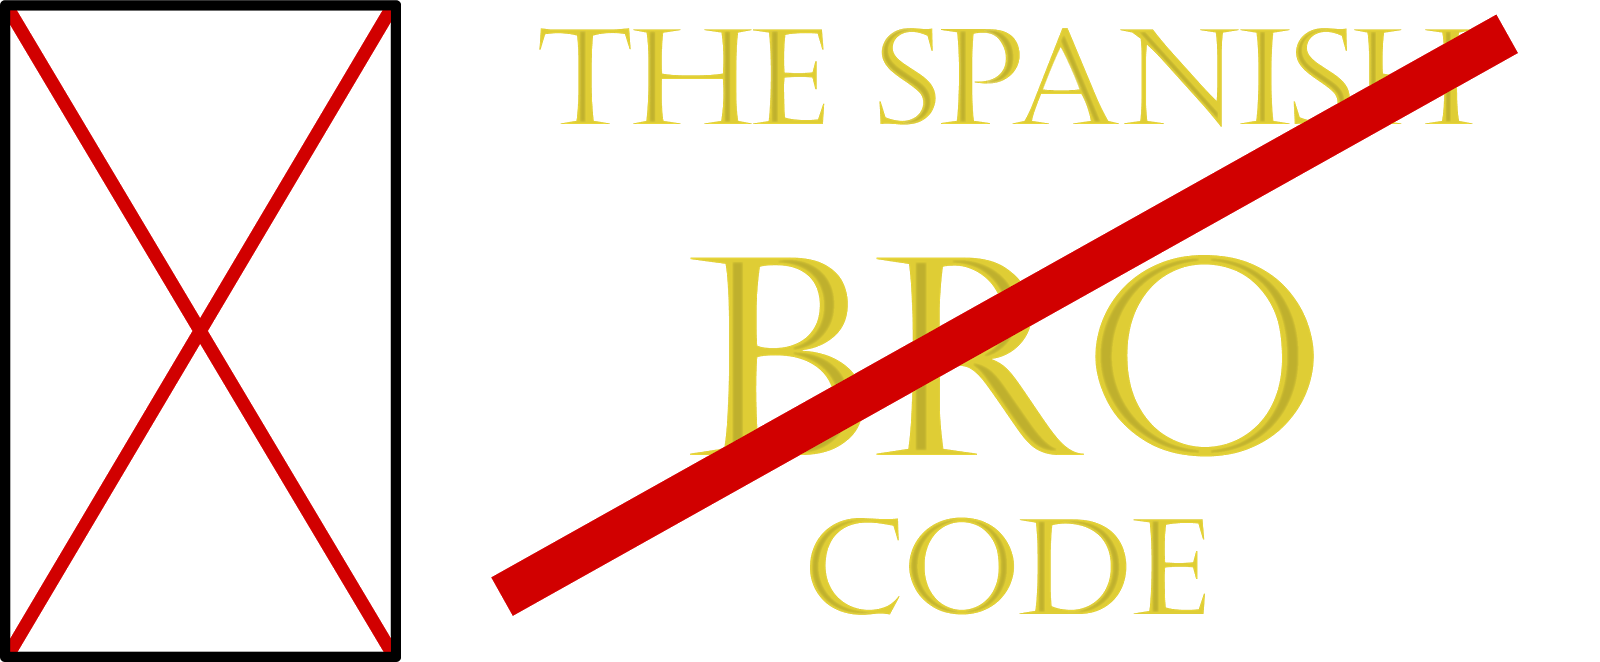 The Spanish Bro Code